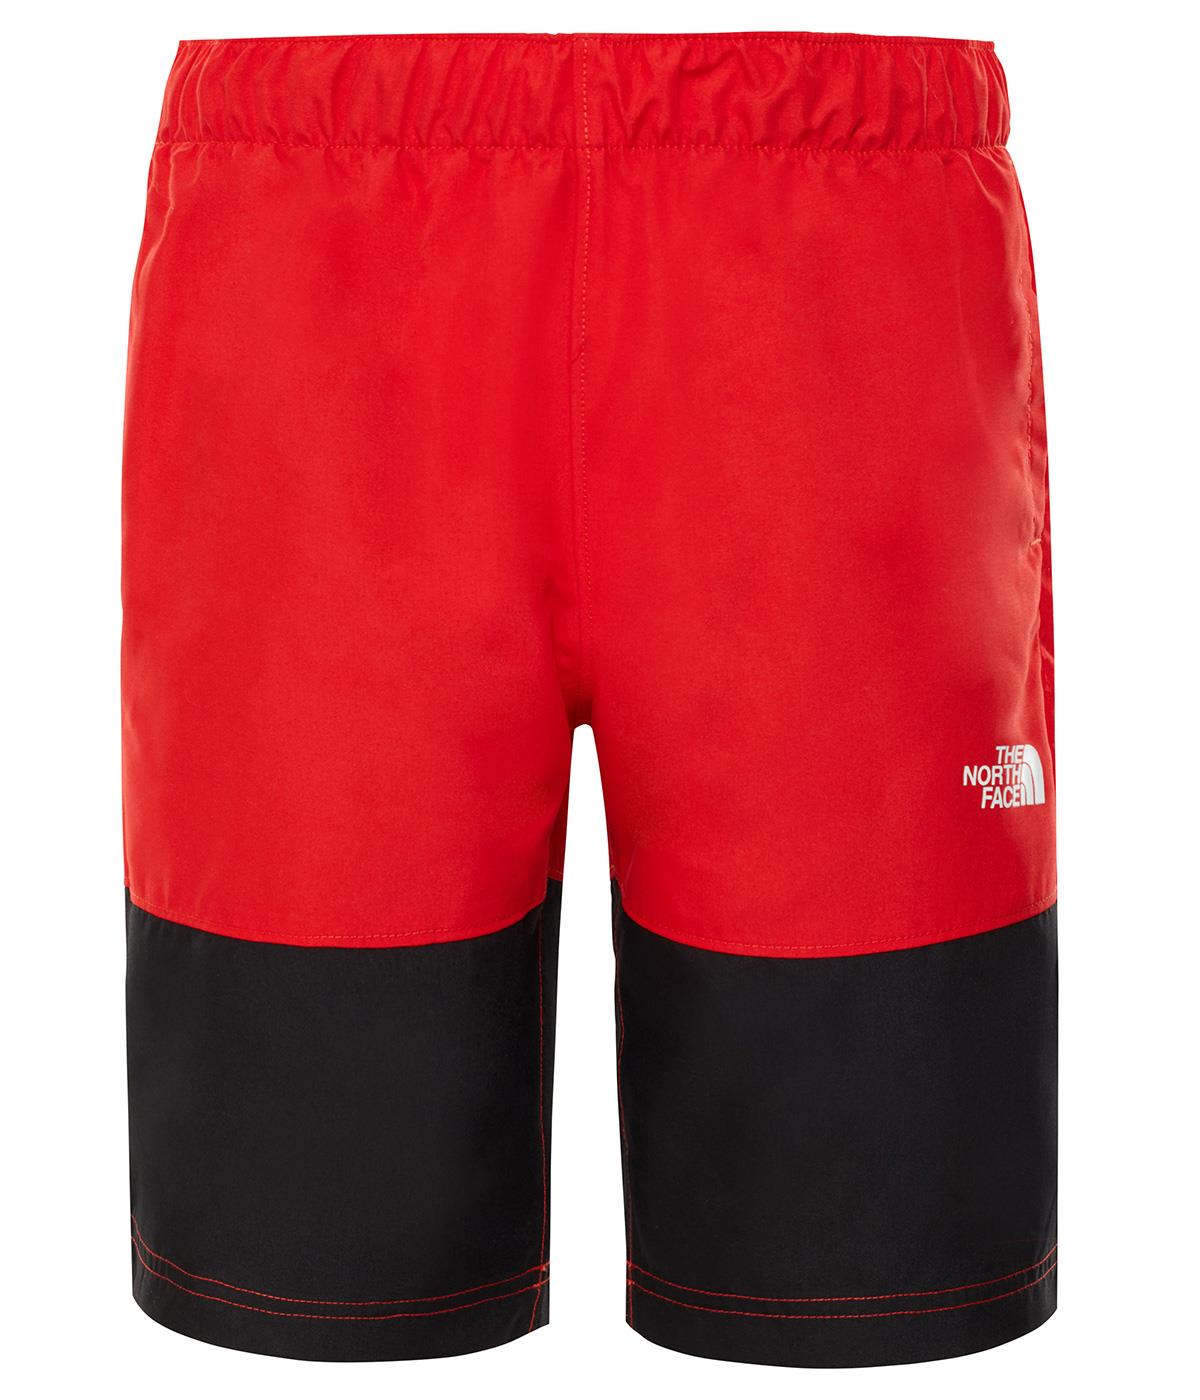 The Northface B Class V Short T93Nnh9Gf Şort